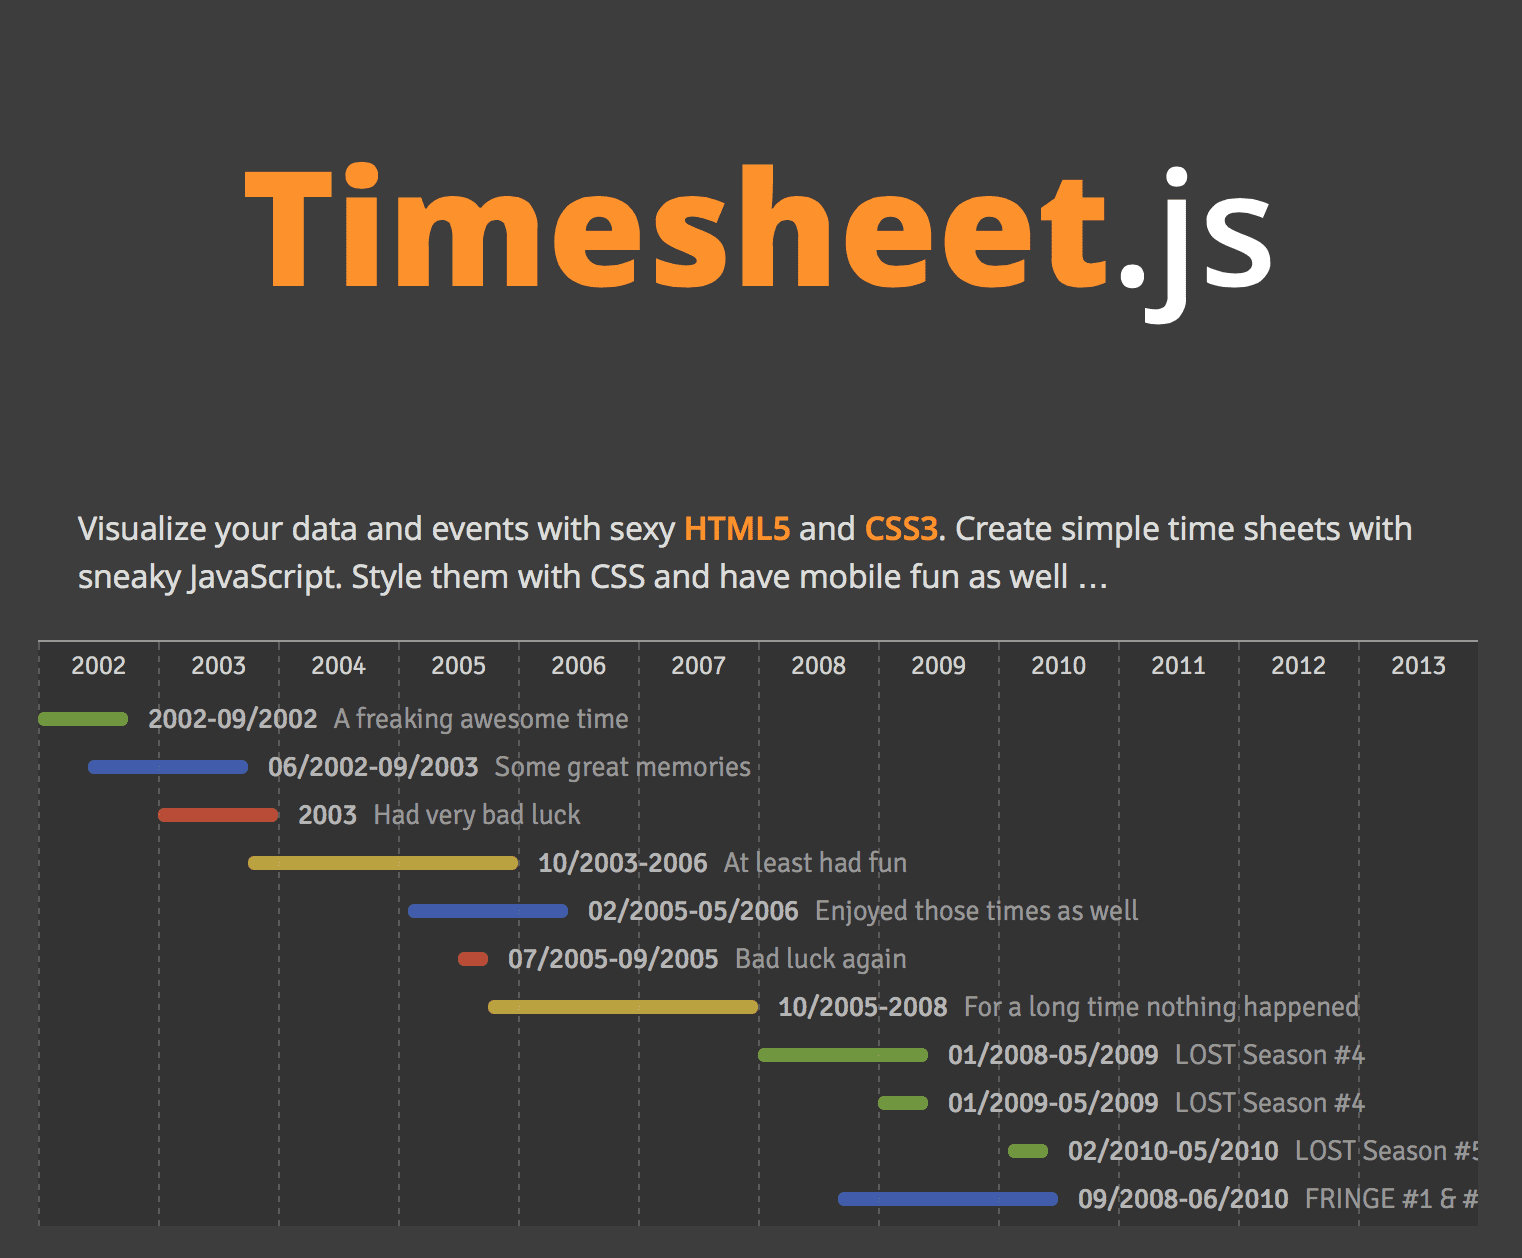 timesheet.js Screenshot